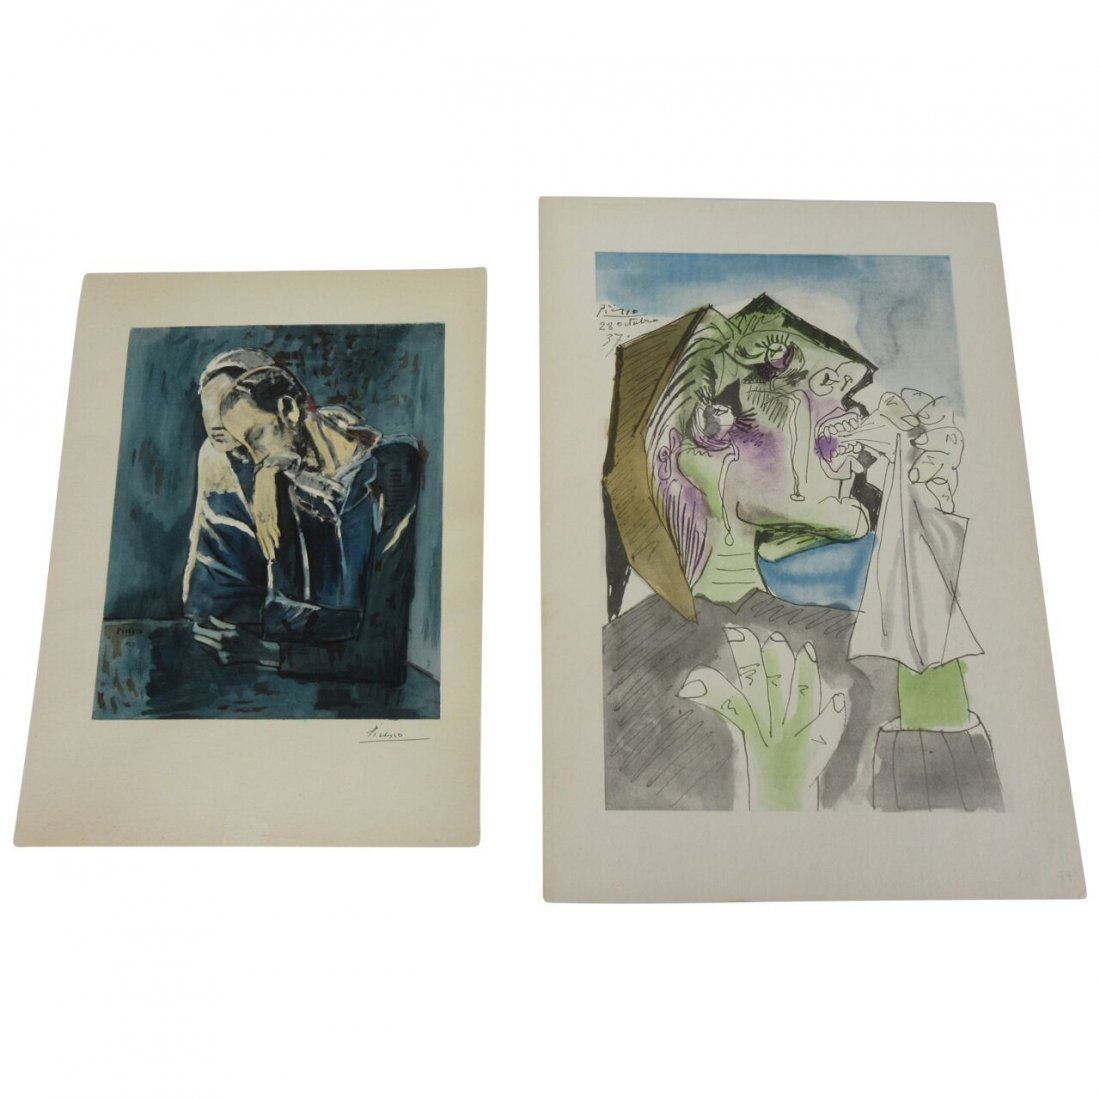 Two Picasso lithographs signed in plate. Measuring 11 x